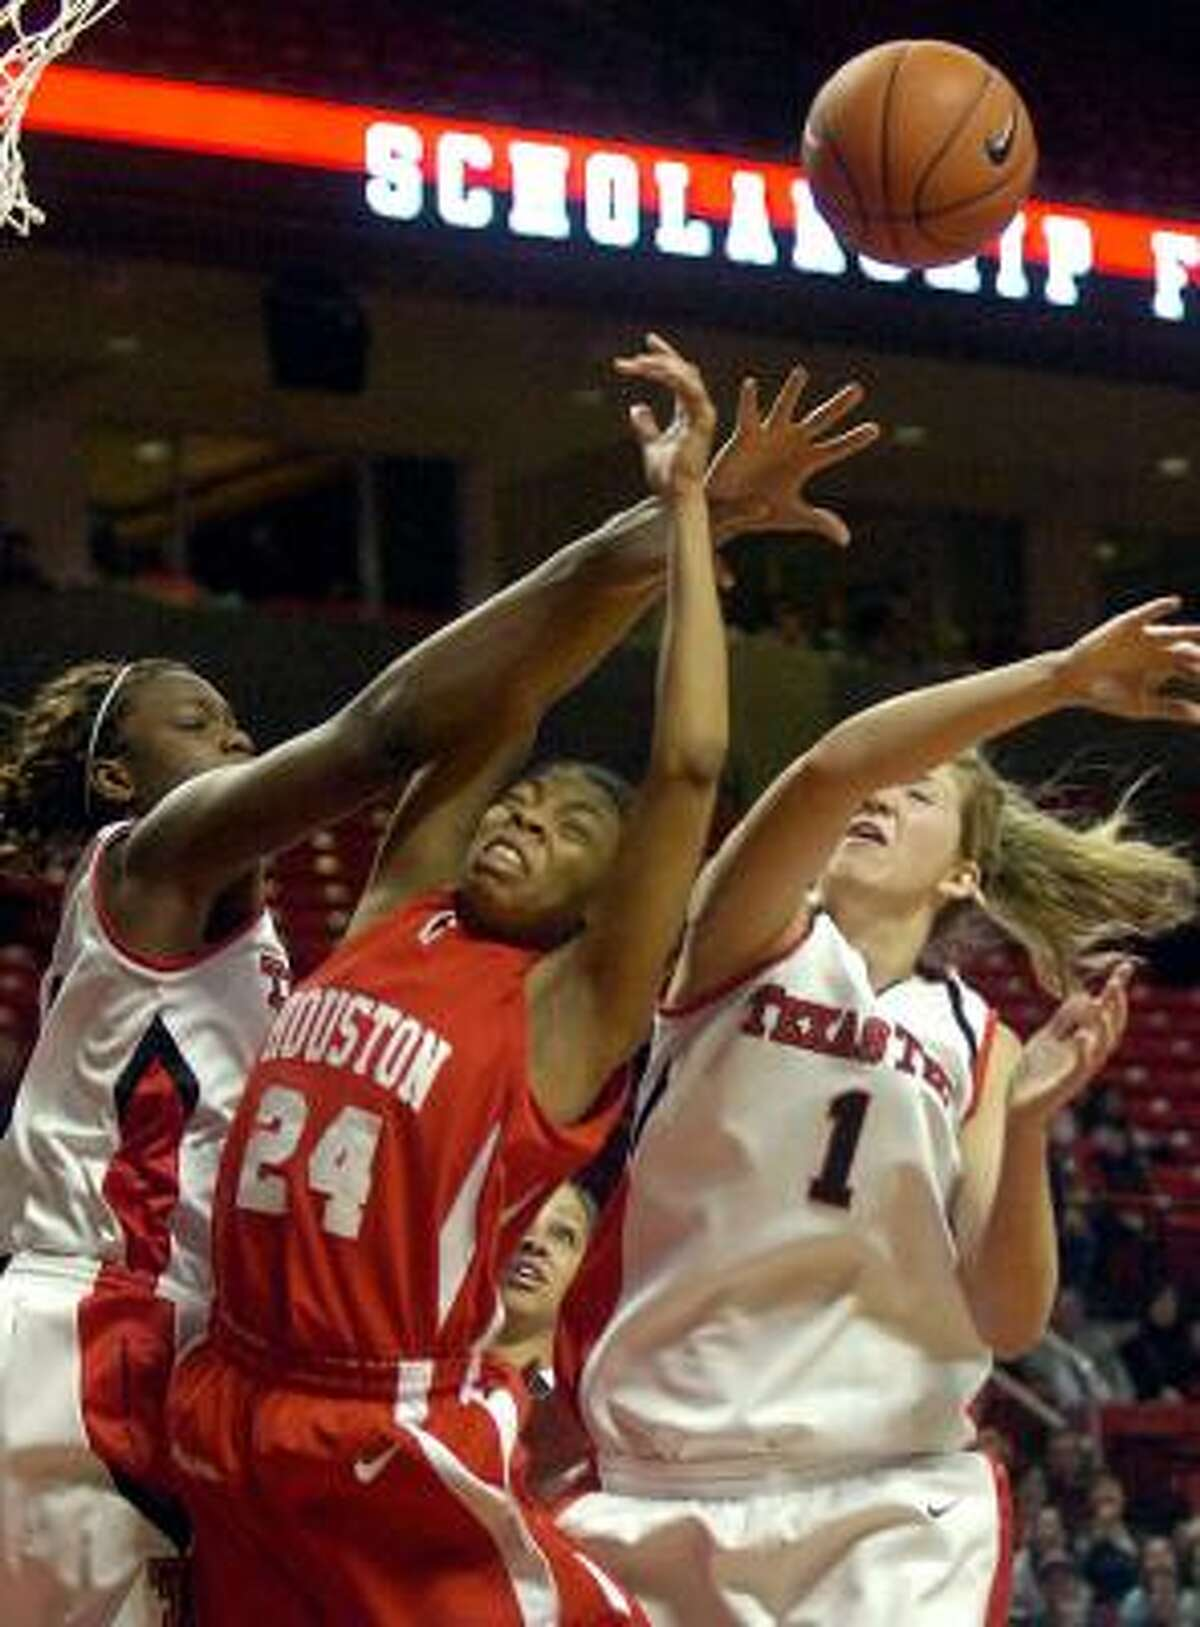 Texas Tech's Christine Hyde, left, and Jordan Barncastle, right, battle for a rebound with Houston's Courtney Taylor.